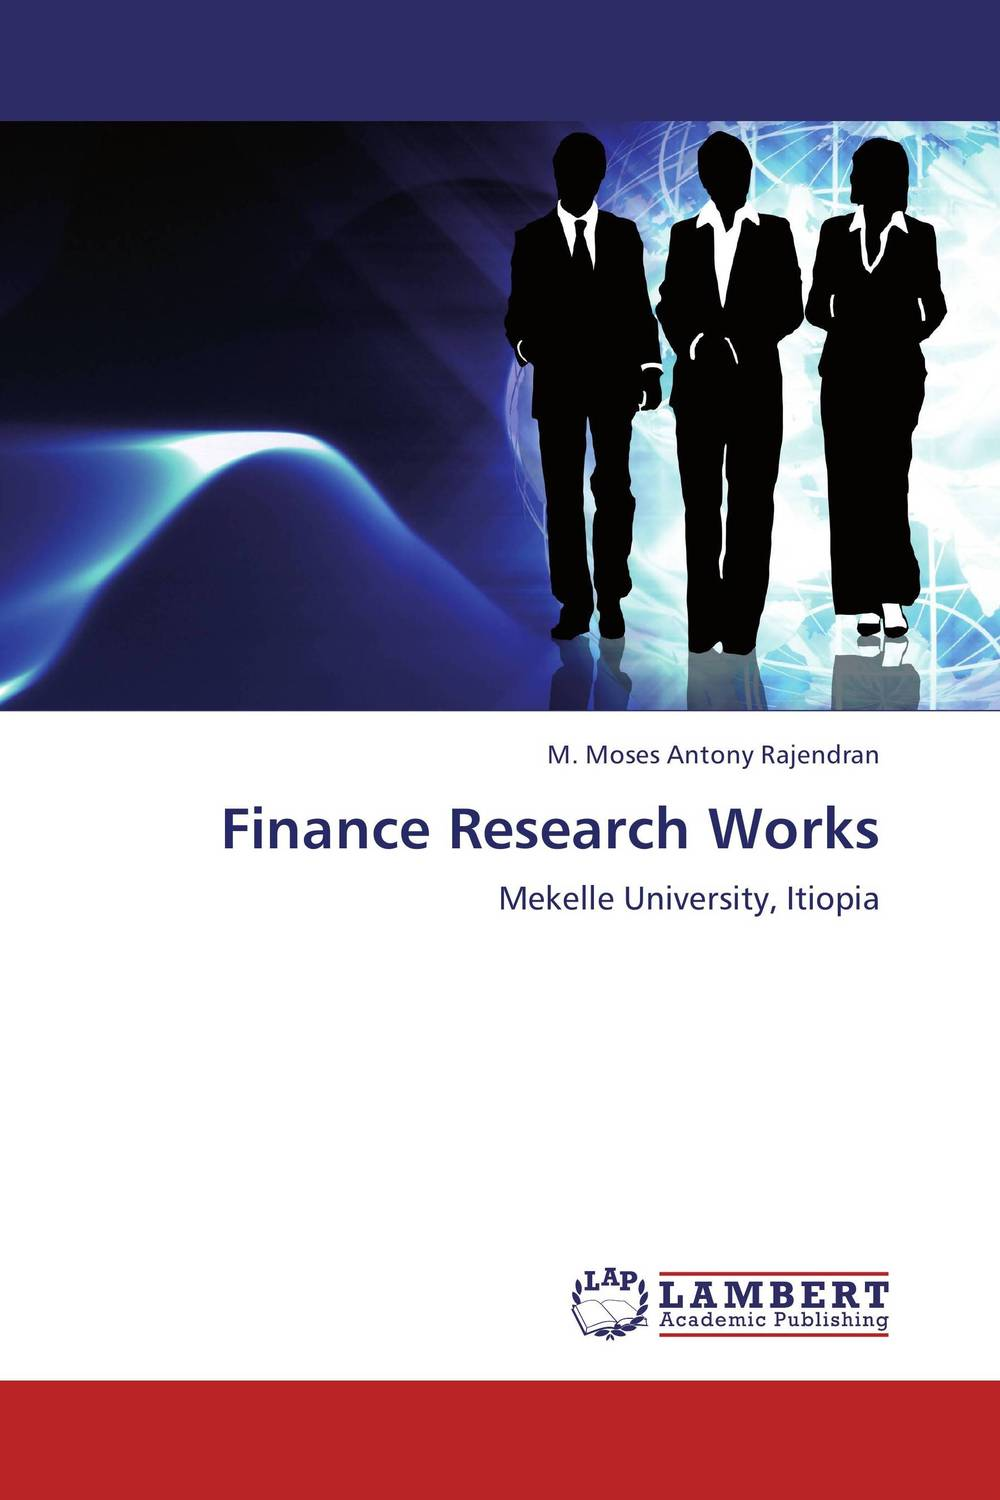 Finance Research Works